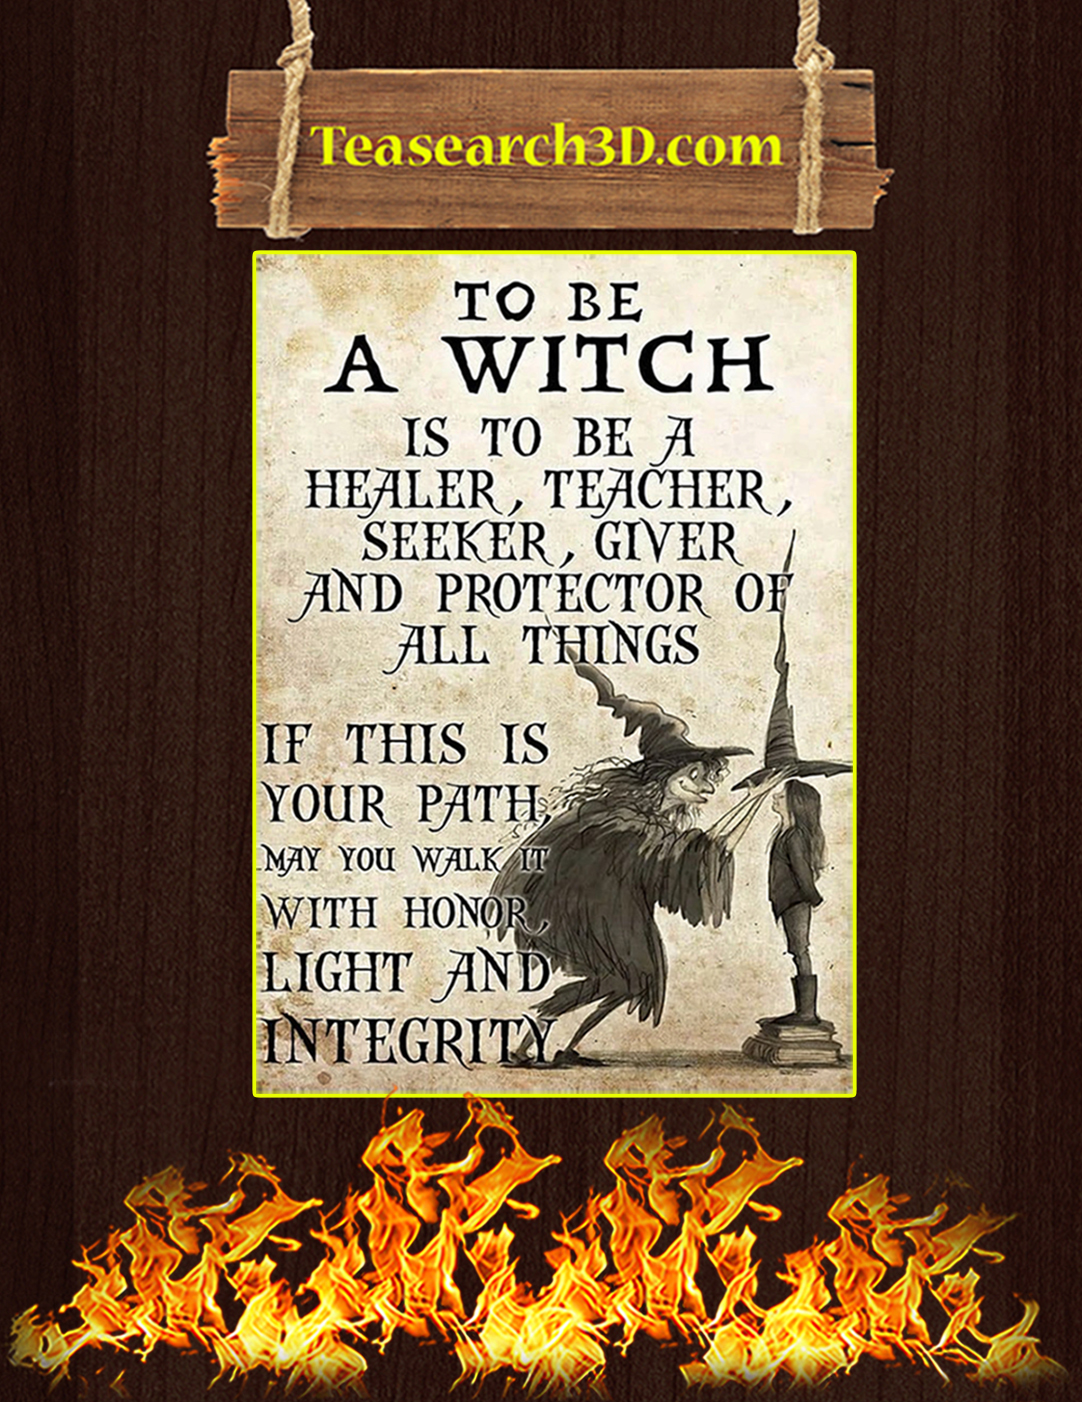 To be a witch is to be a healer teacher poster A2